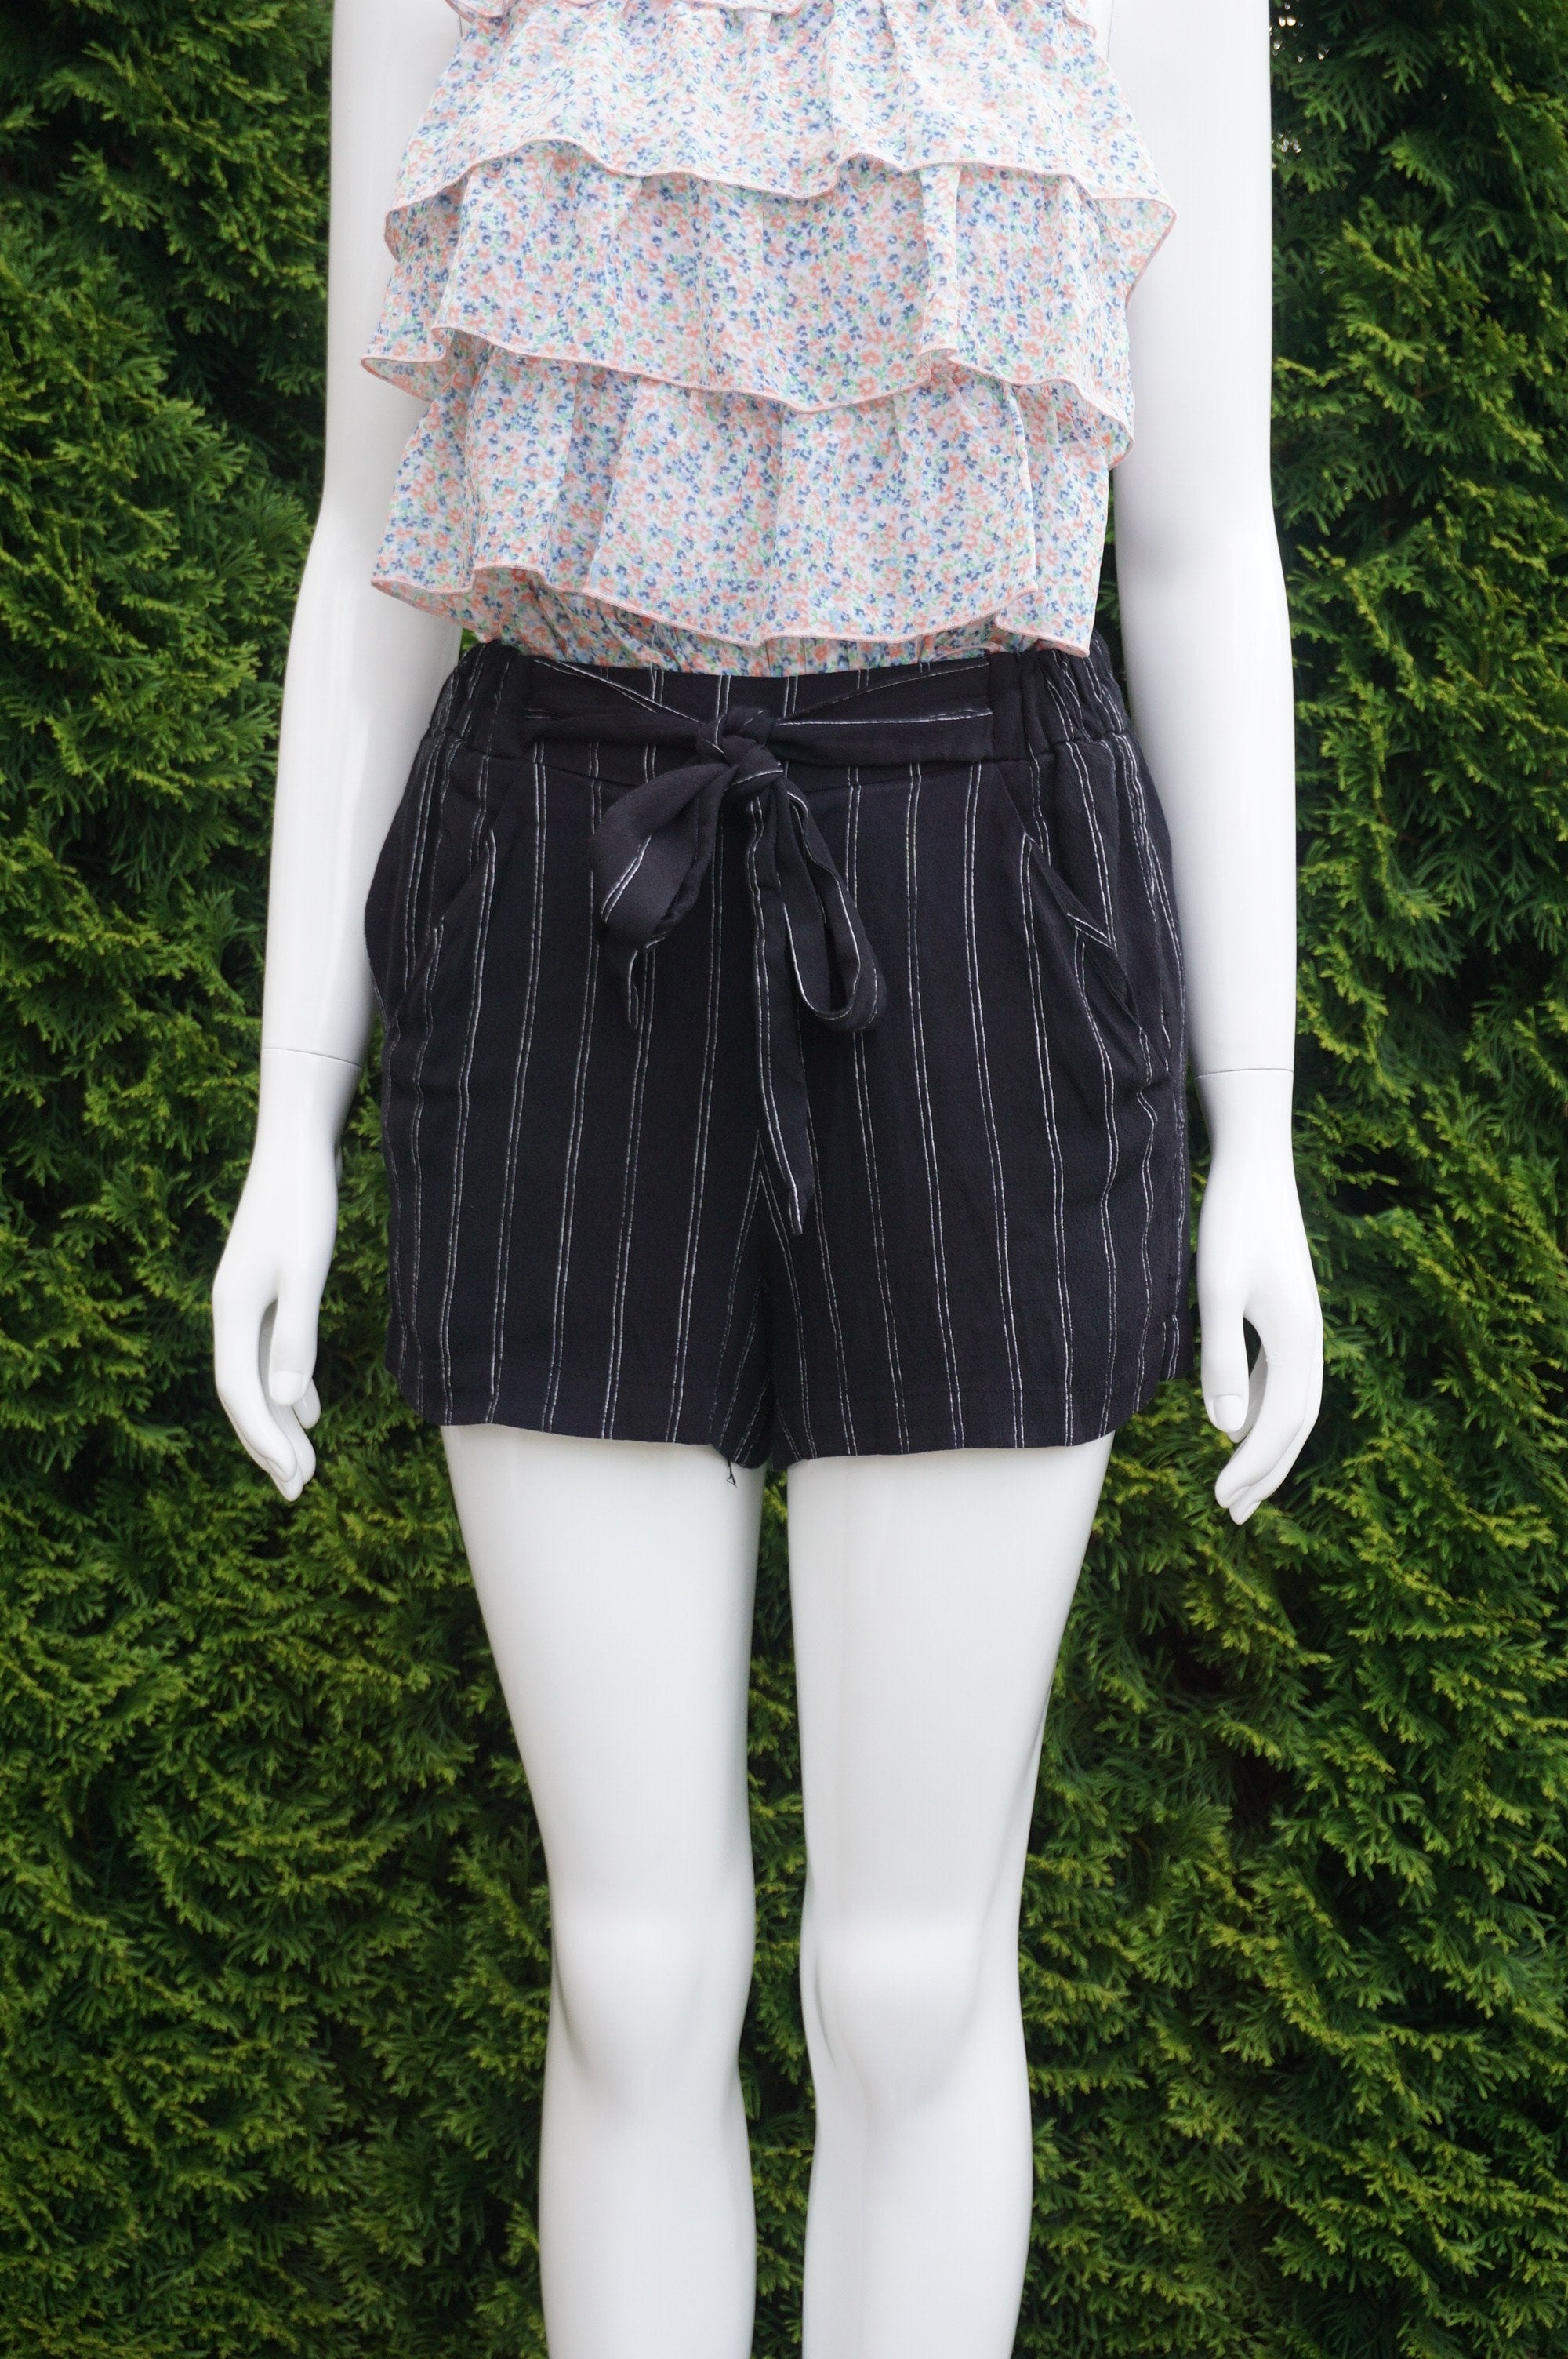 Wilfred Higggh waist loose shorts, elastic waistband. Measures 24 inches when relaxed. Length 12 inches. Two front pockets, Black, women's Skirts & Shorts, women's Black Skirts & Shorts, Wilfred women's Skirts & Shorts, loose shorts, flowy shorts, aritzia shorts, wilfred shorts